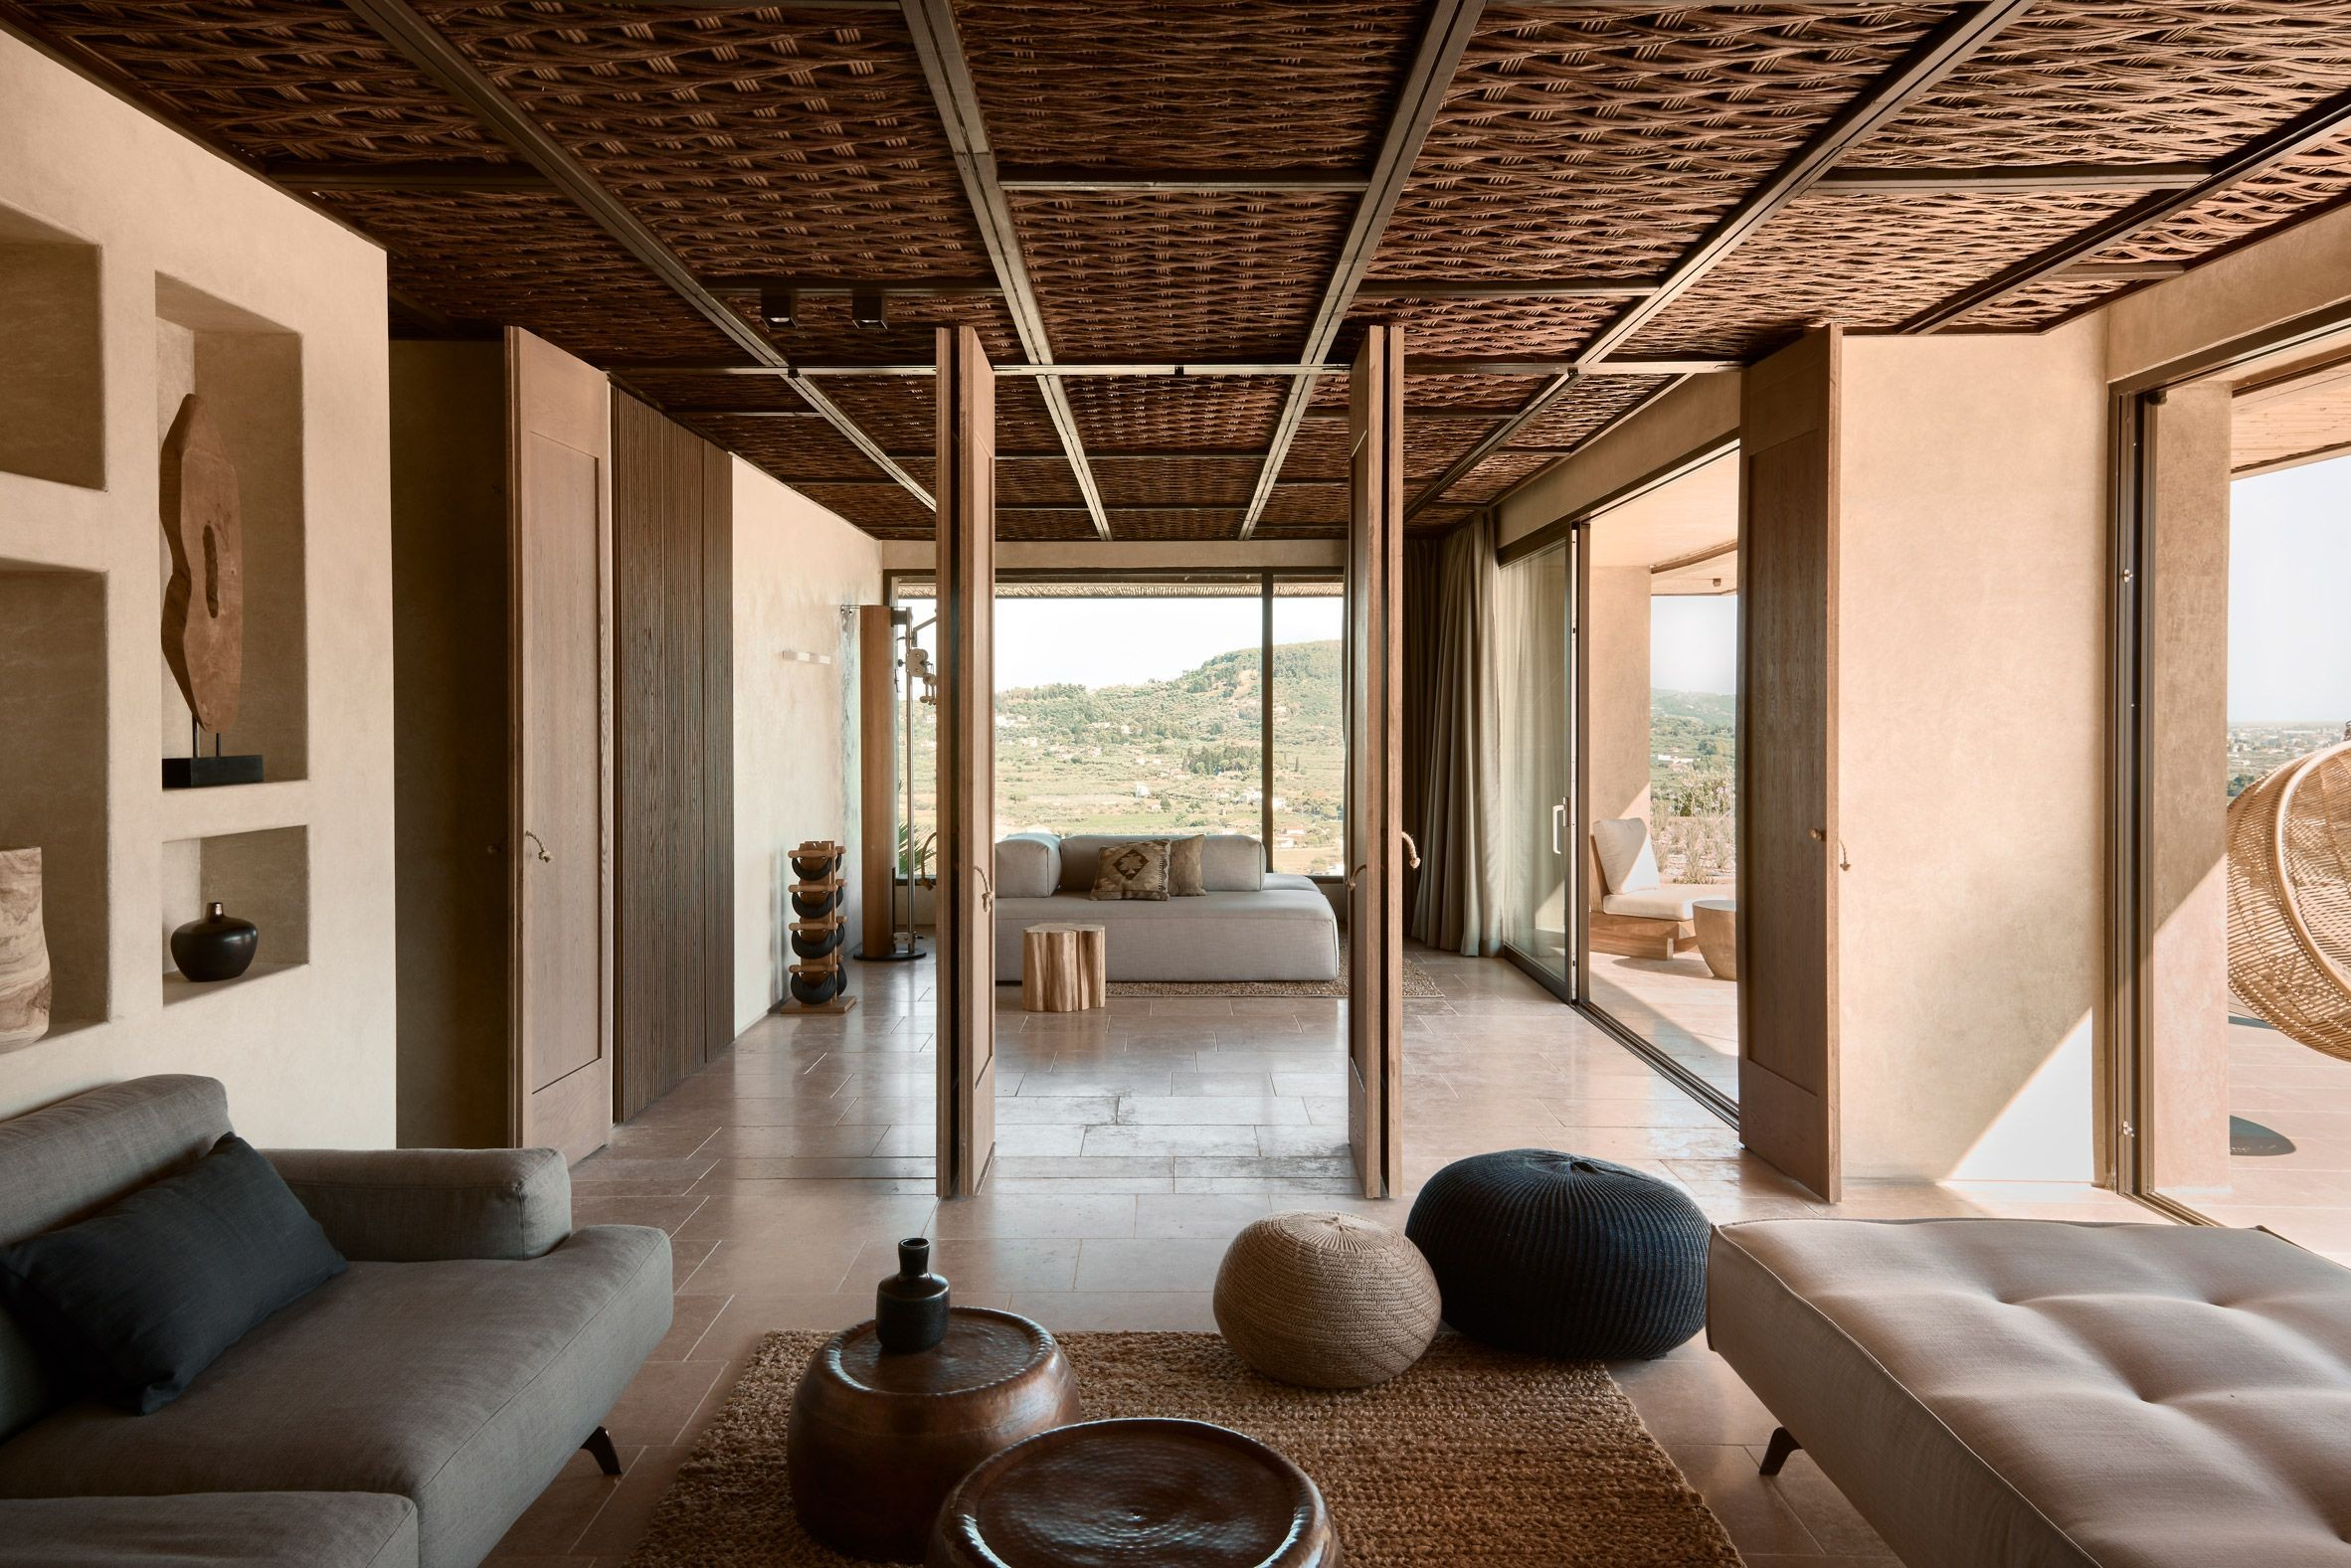 5 of the best new wellness retreats for design lovers